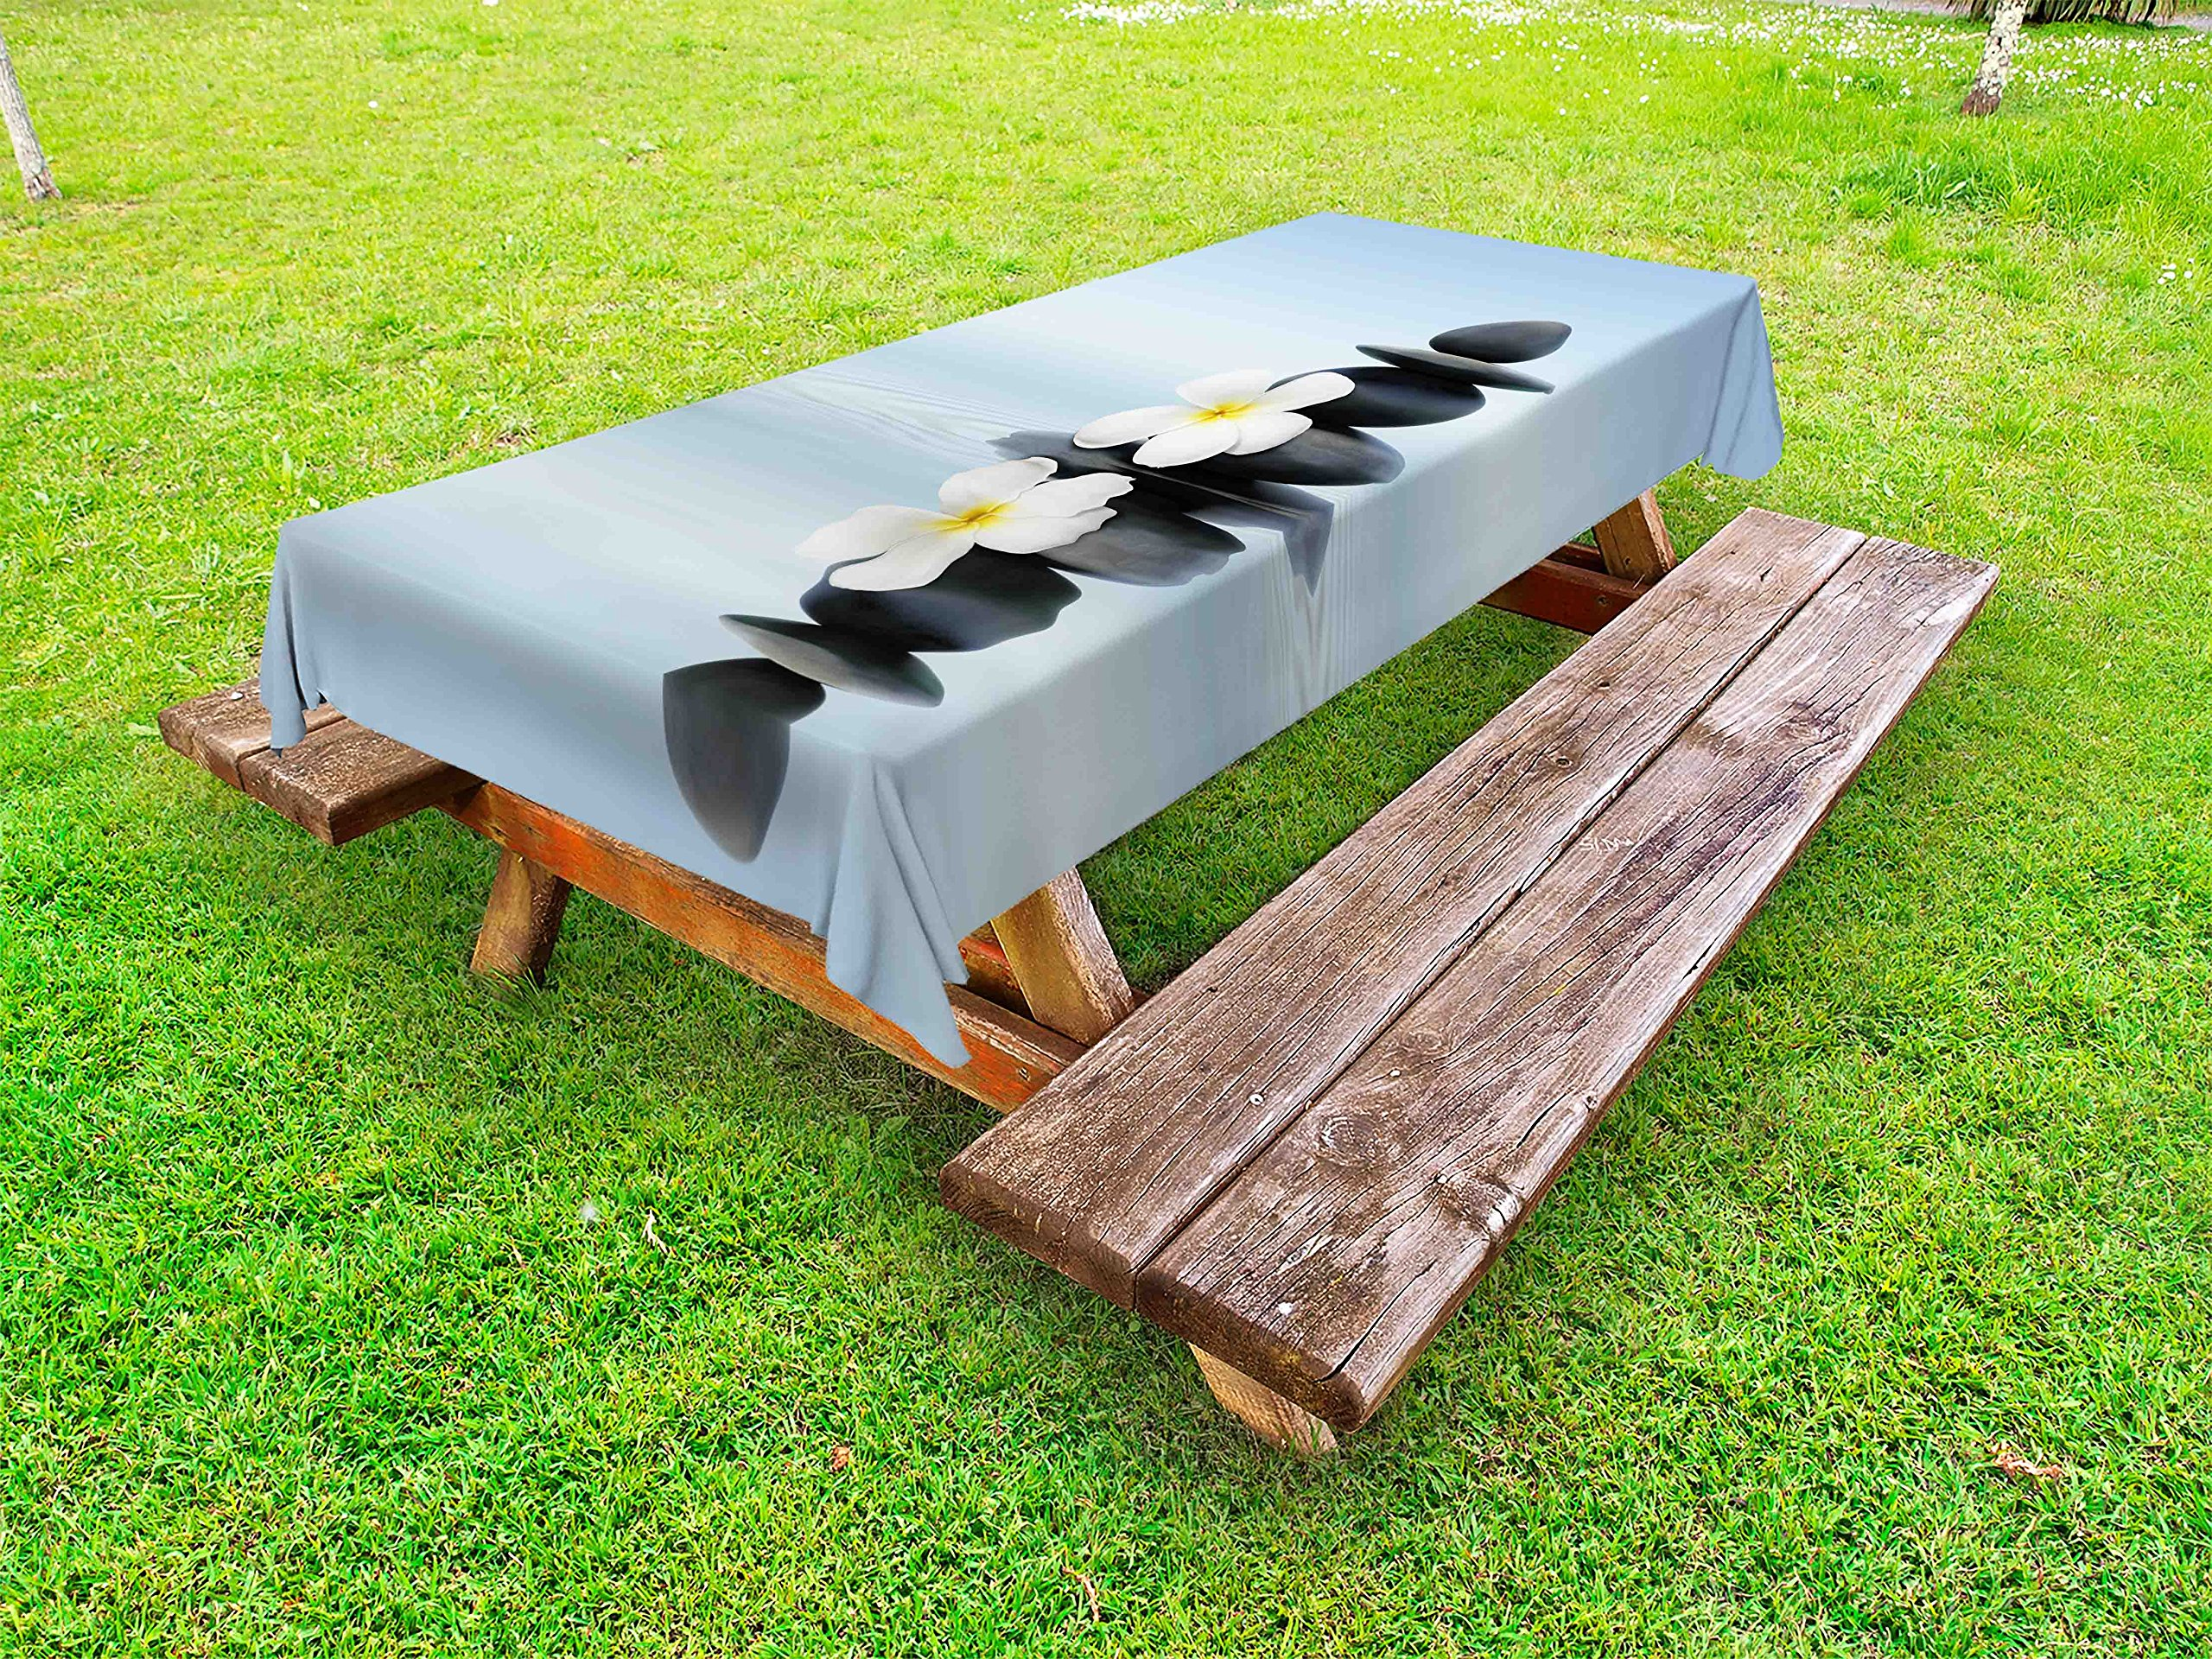 Ambesonne Spa Outdoor Tablecloth, Hot Zen Massage Stones with Asian Frangipani Plumera Reflection on The Waters, Decorative Washable Picnic Table Cloth, 58 X 84 inches, Pale Blue and Grey